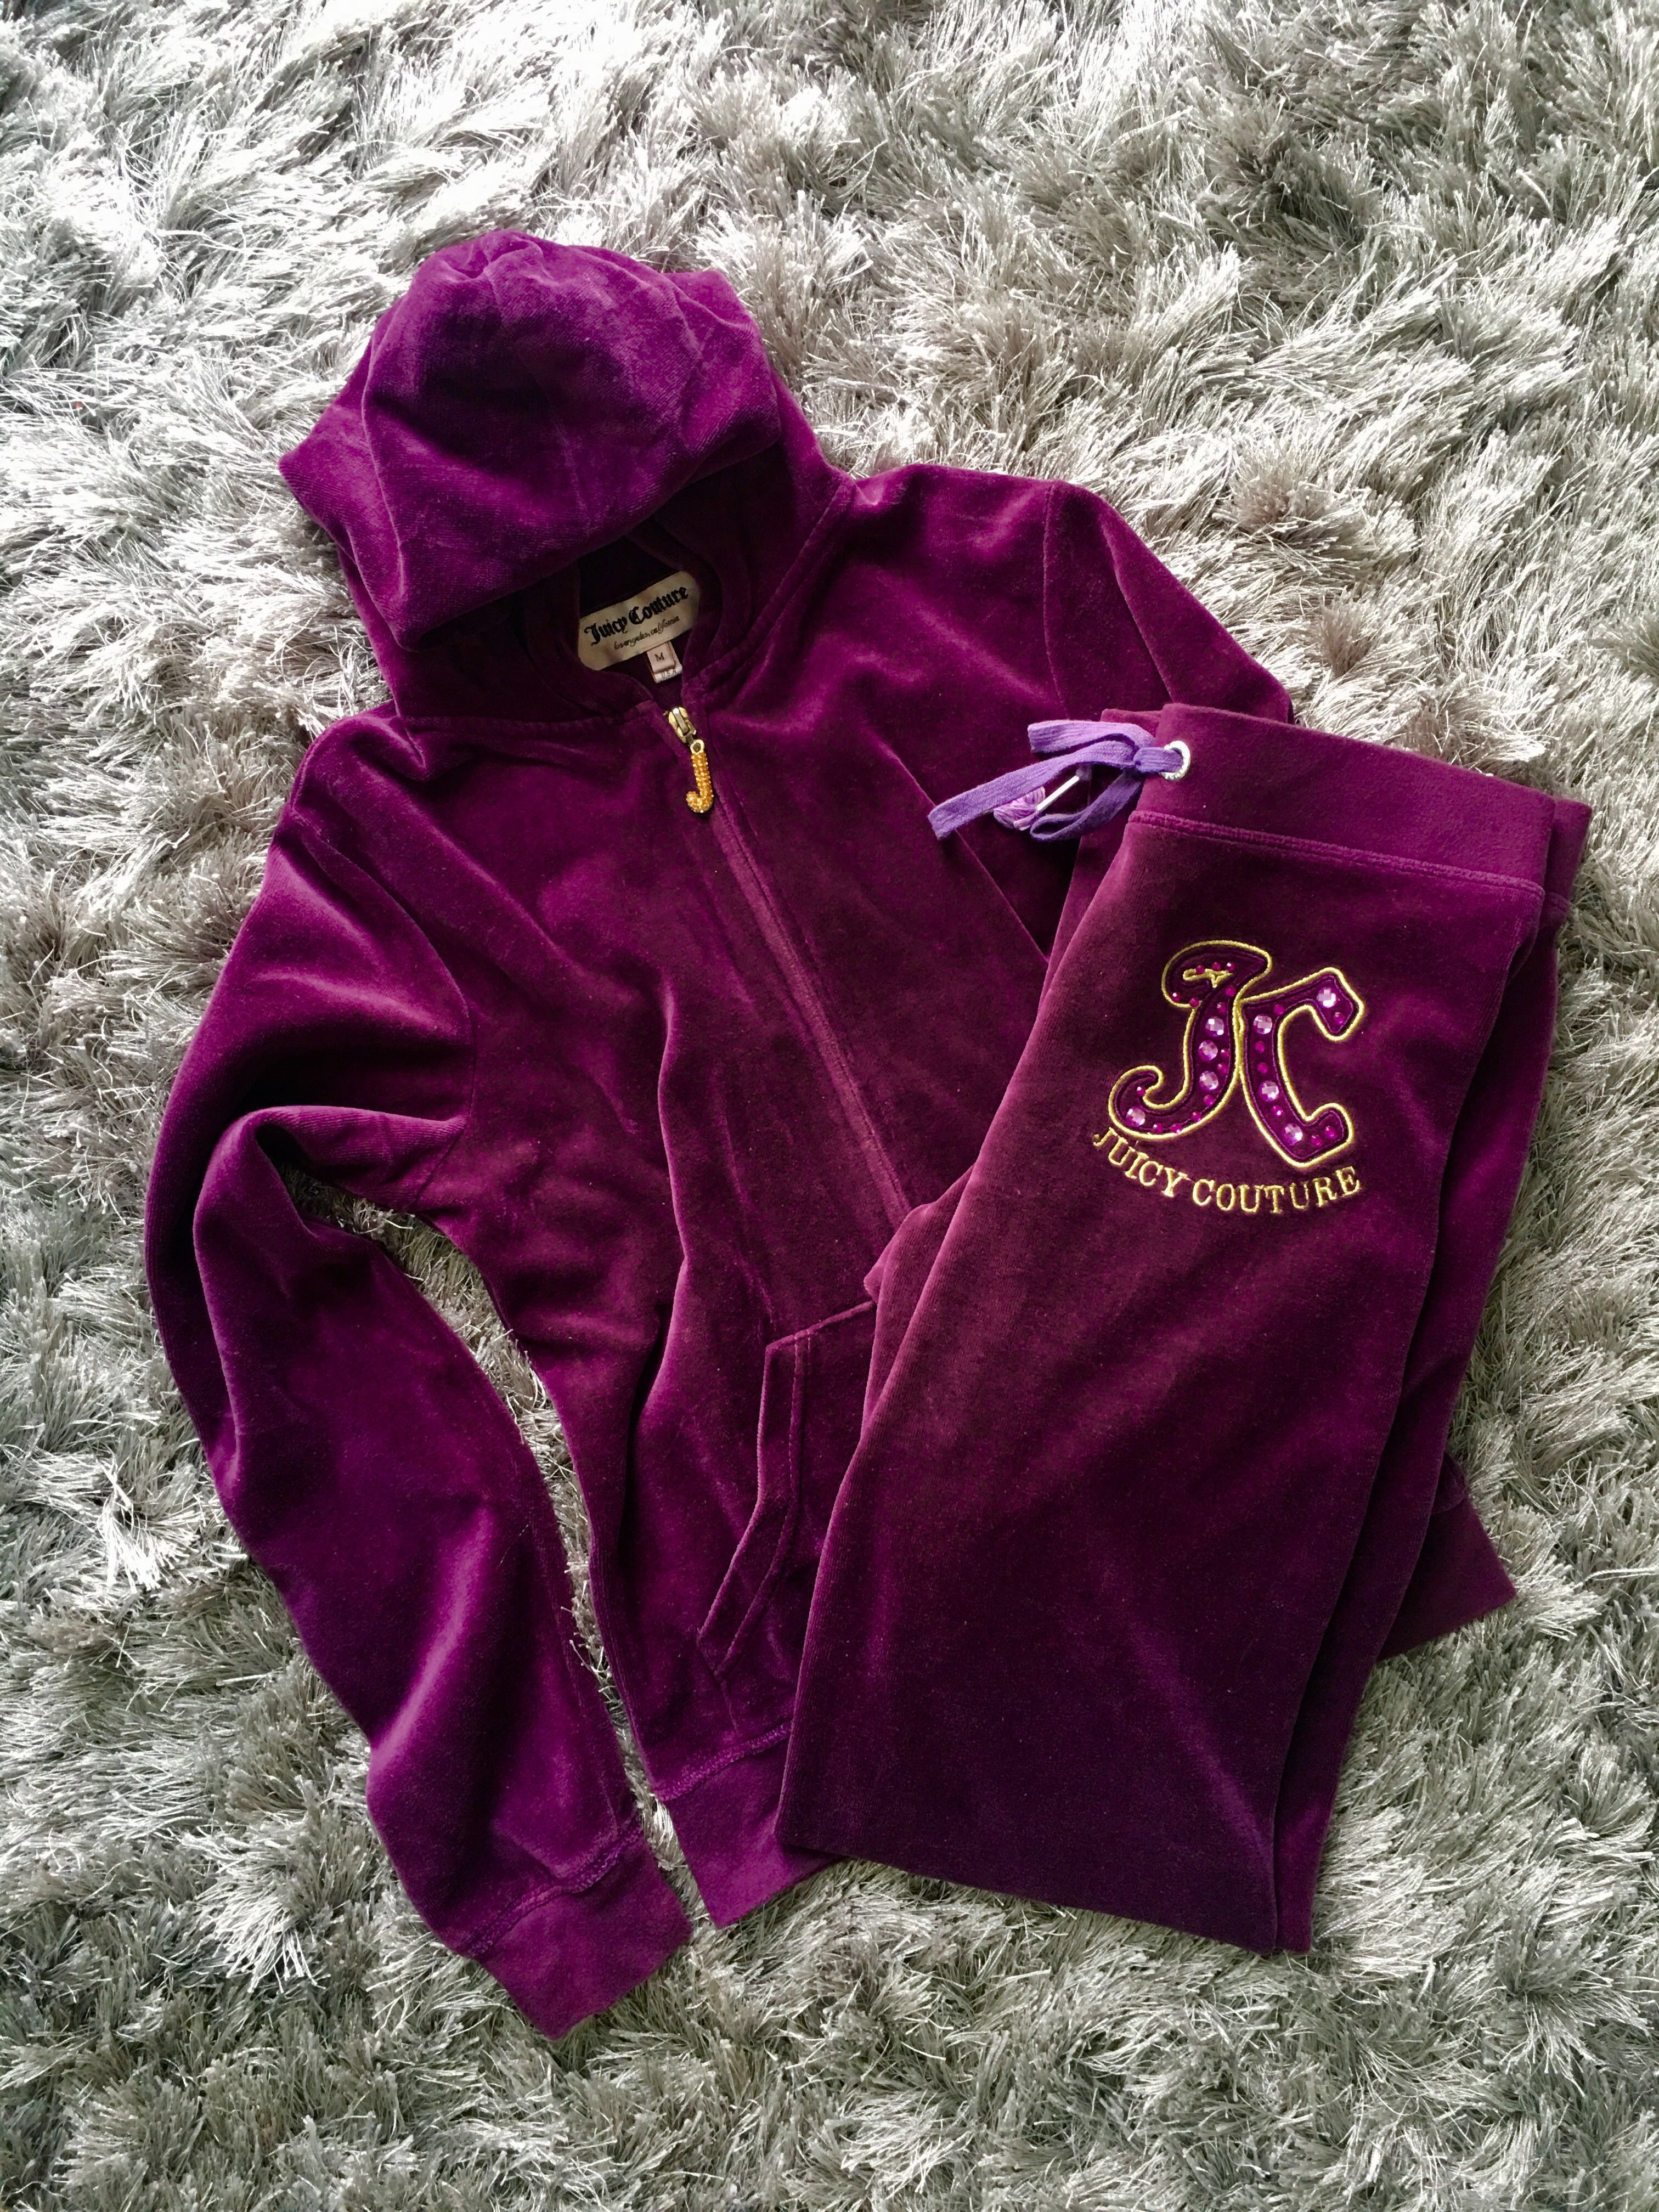 780a07a2a1b5 JUICY COUTURE Burgundy Track Jacket Hoodie